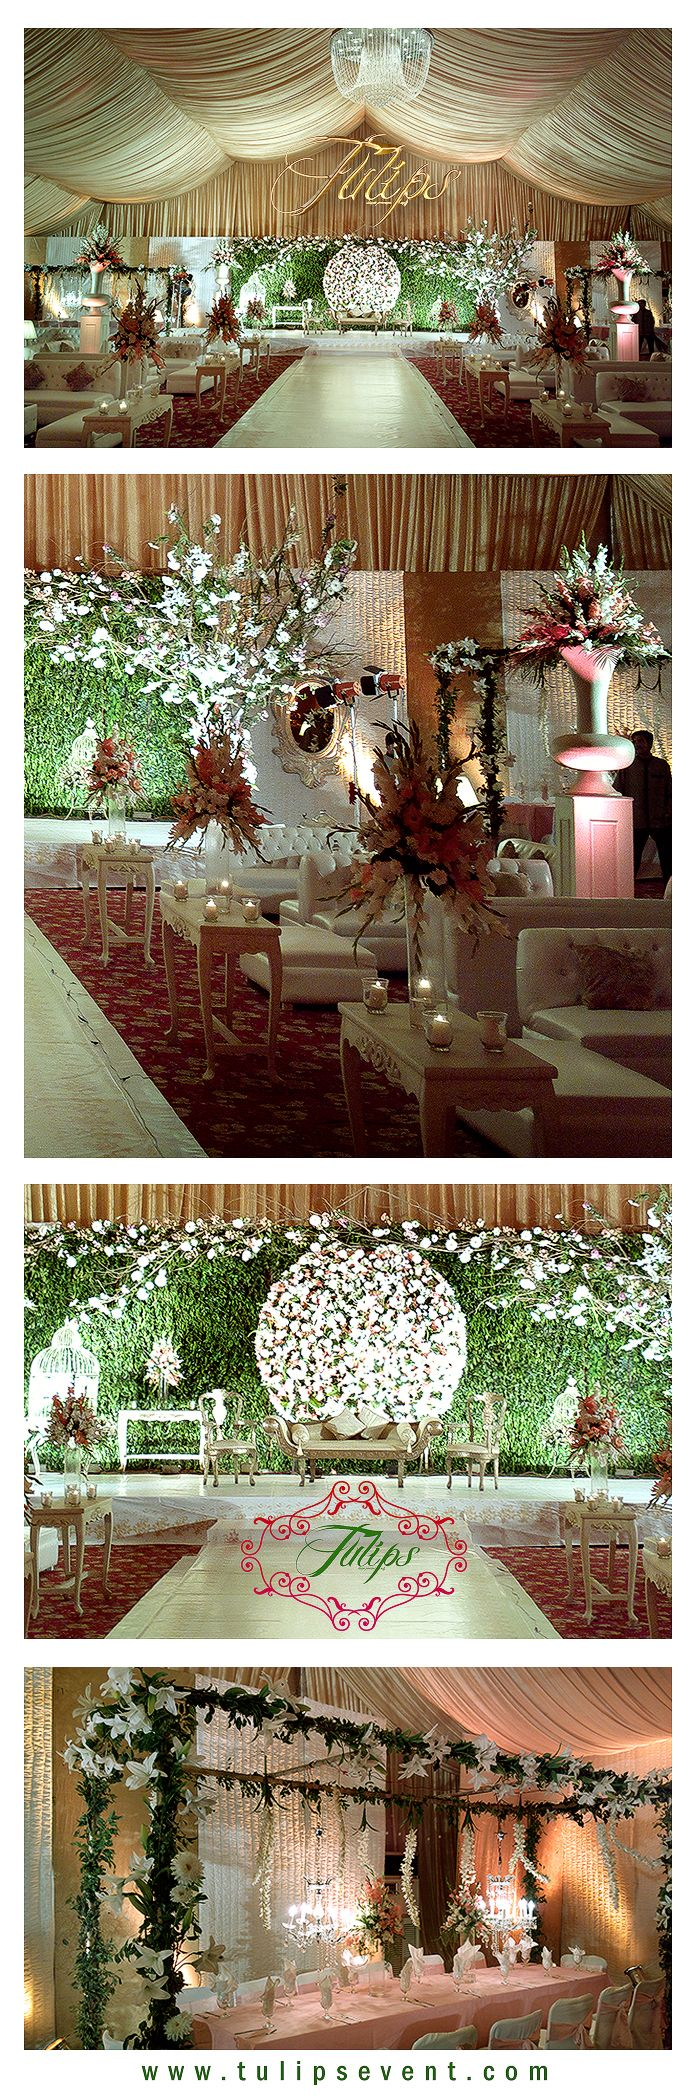 17 best images about pakistani wedding decoration ideas on for Garden designs in pakistan